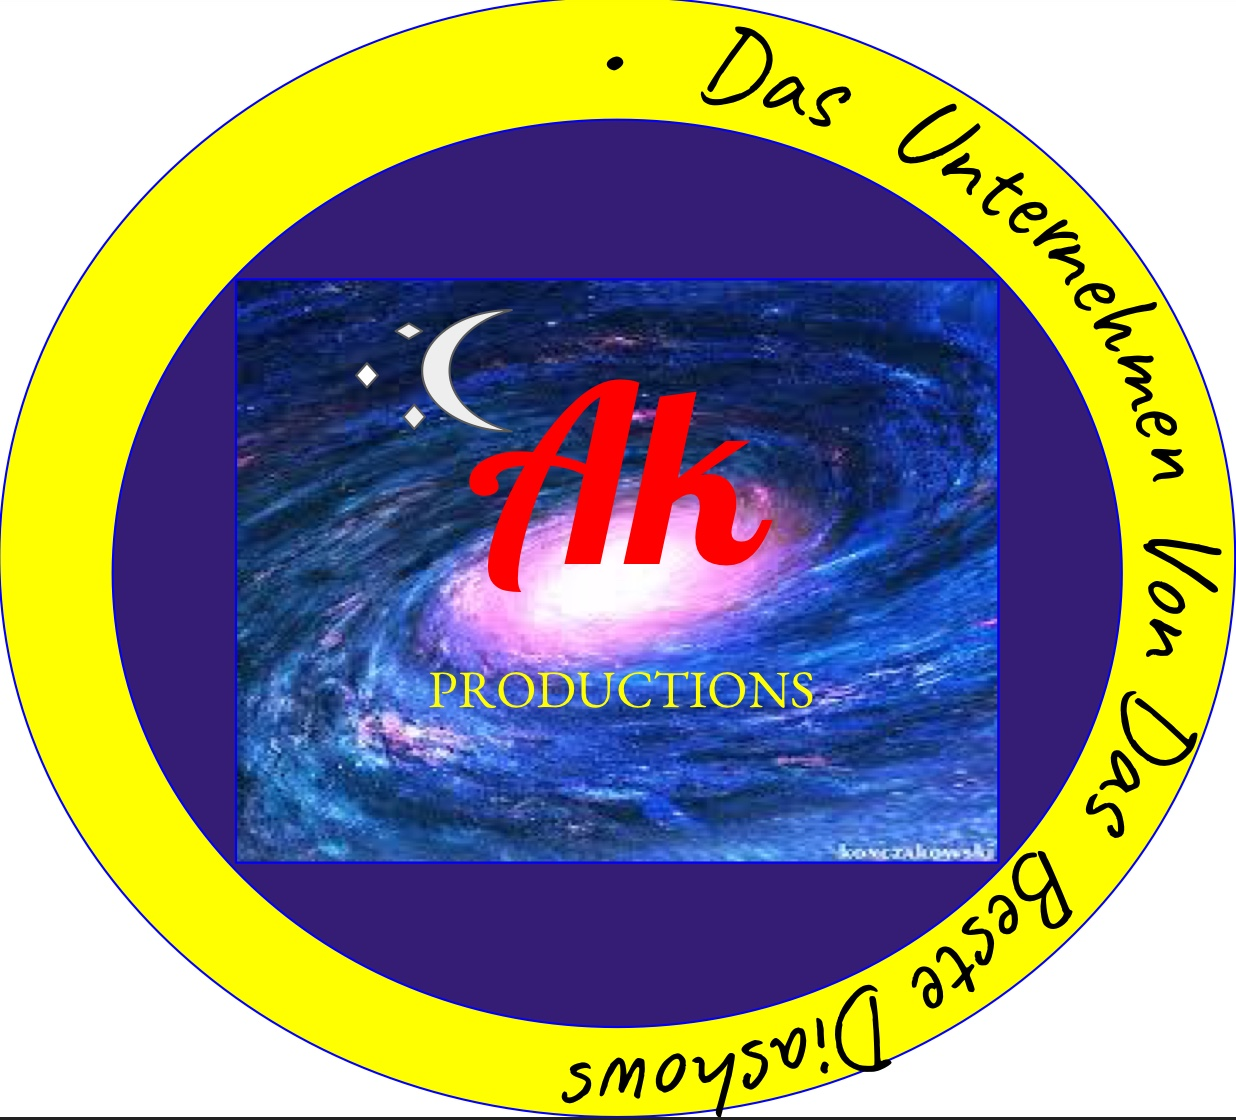 AK productions image